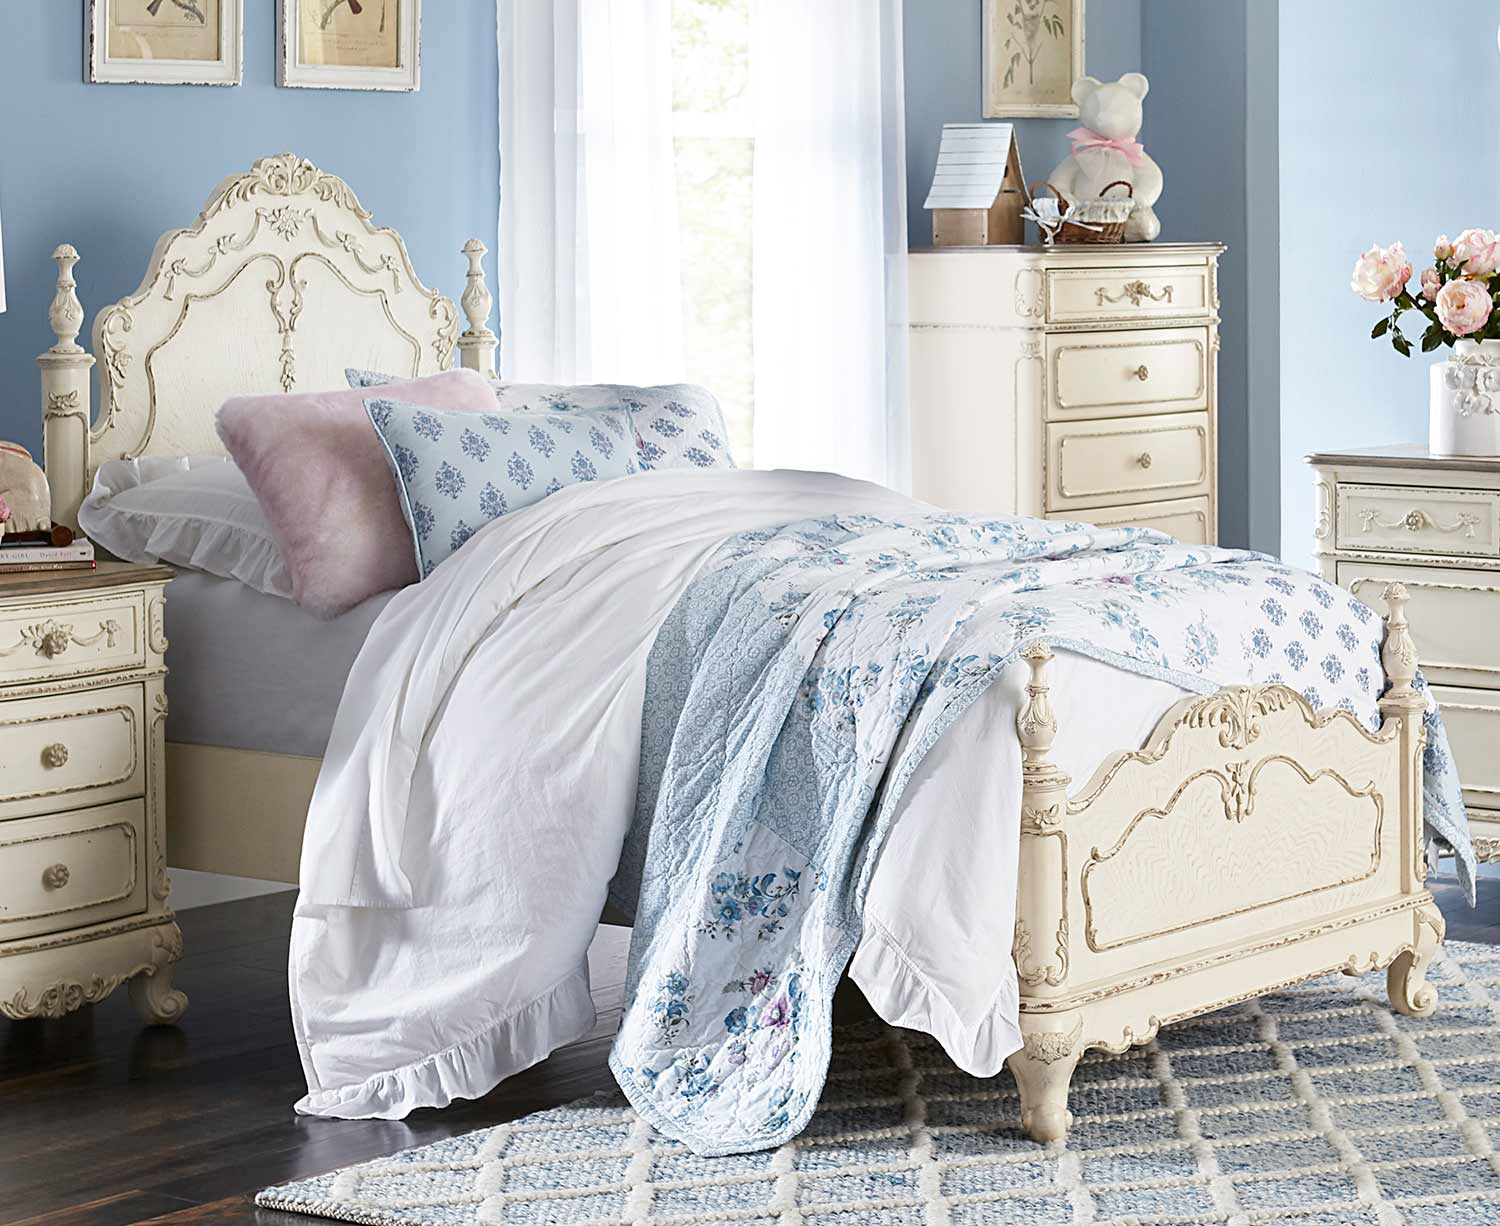 Homelegance Cinderella Bed - Antique White with Gray Rub-Through